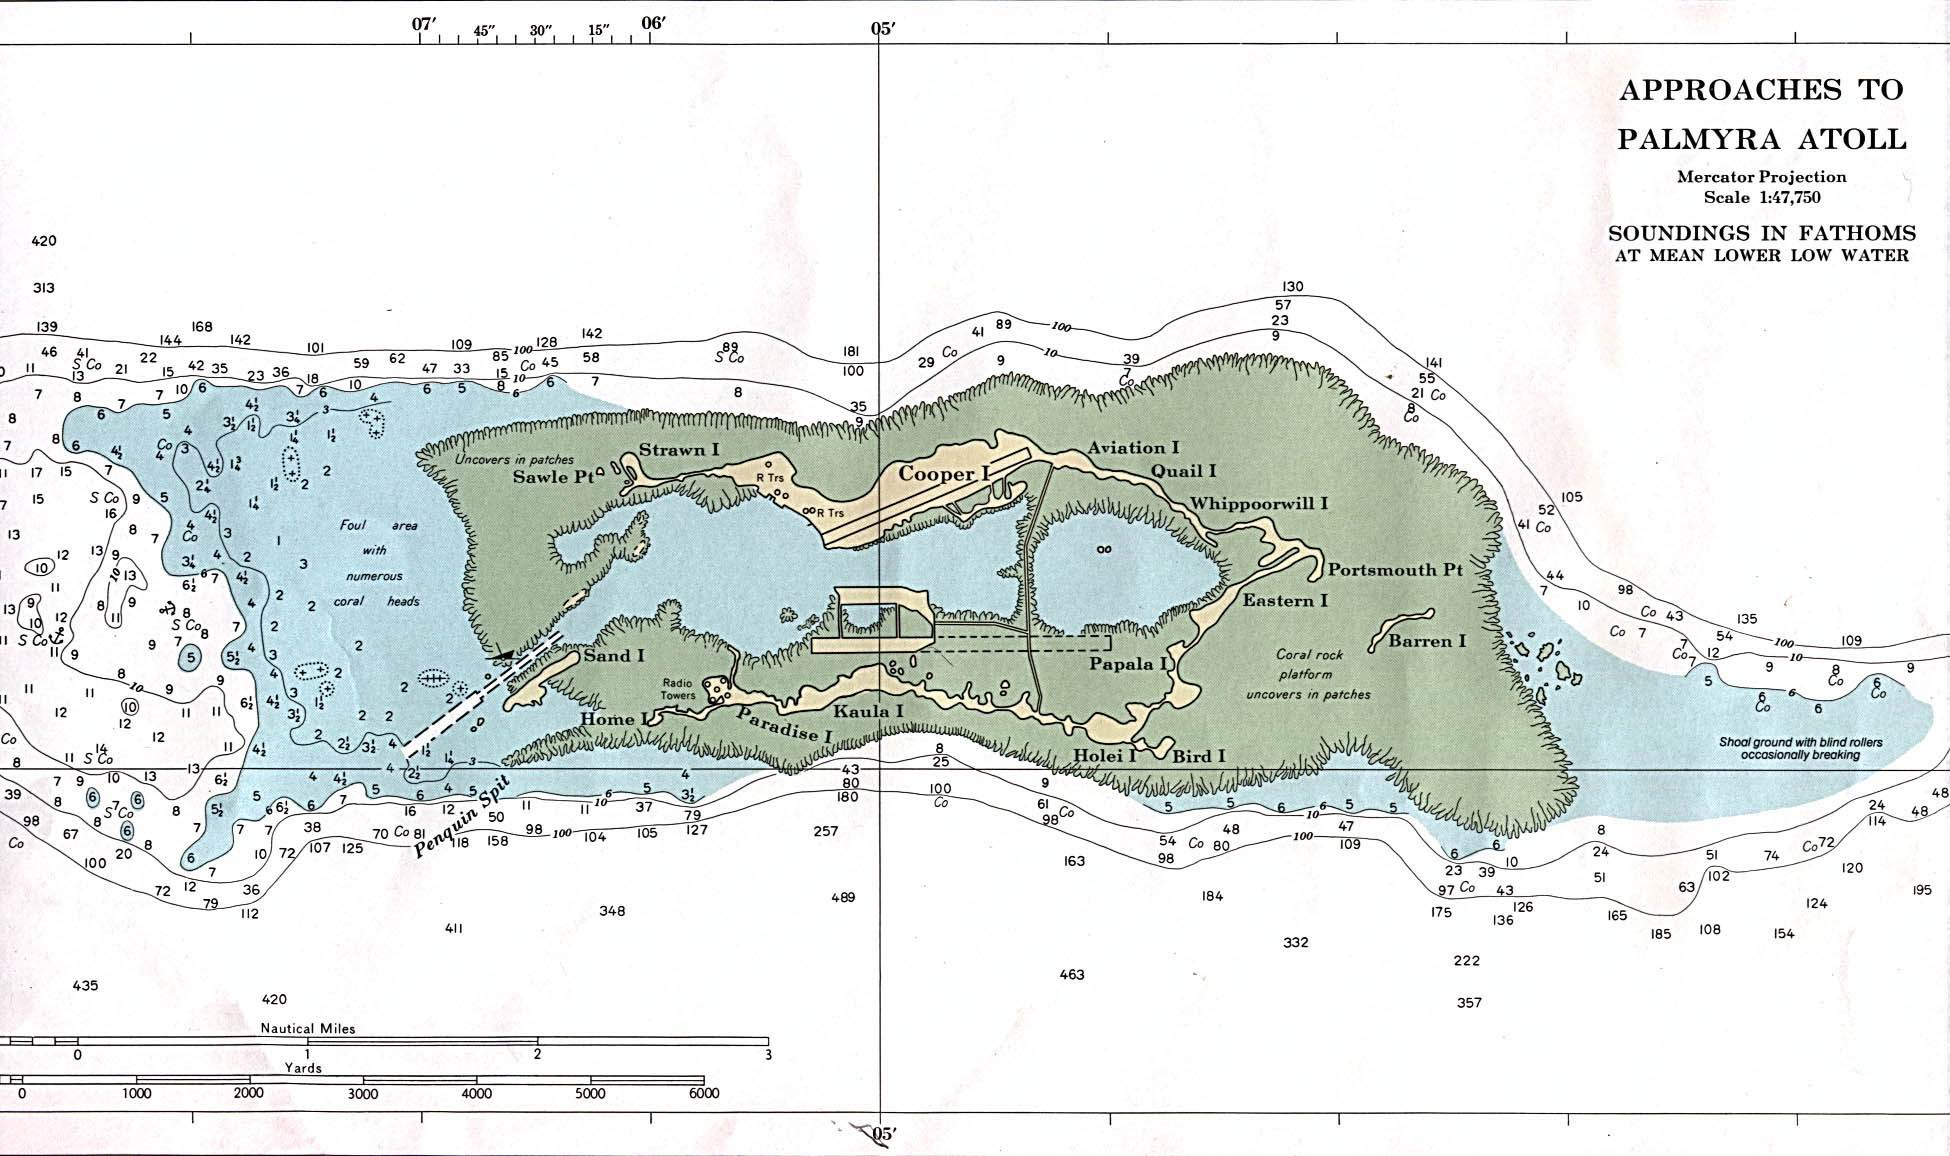 Palmyra Atoll (U.S.) (Nautical chart) original scale 1:47,750 N.O.A.A. 1991. Not for navigational use